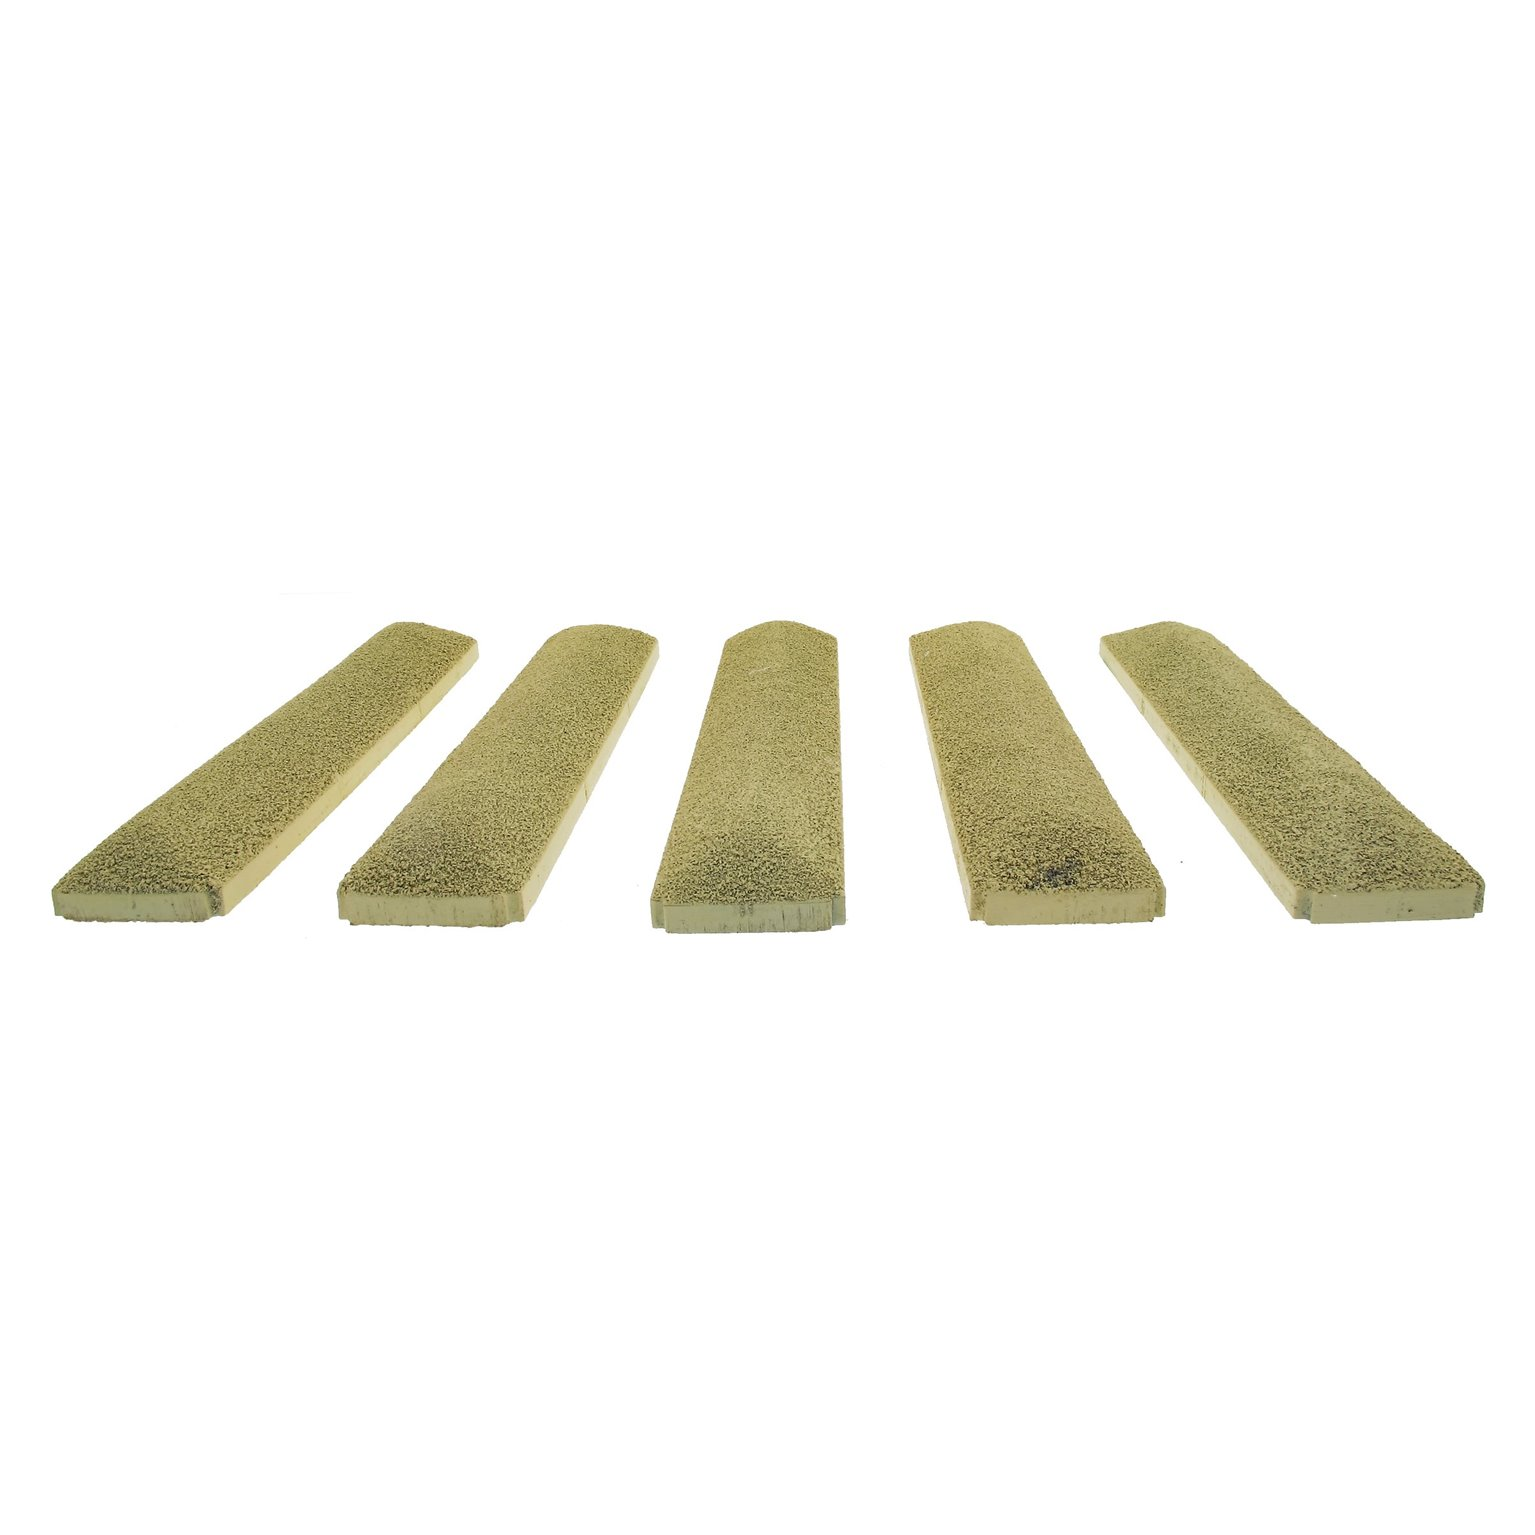 Dolofines / Lime - 'Real' Loads for PTA Hoppers - 5 Pack